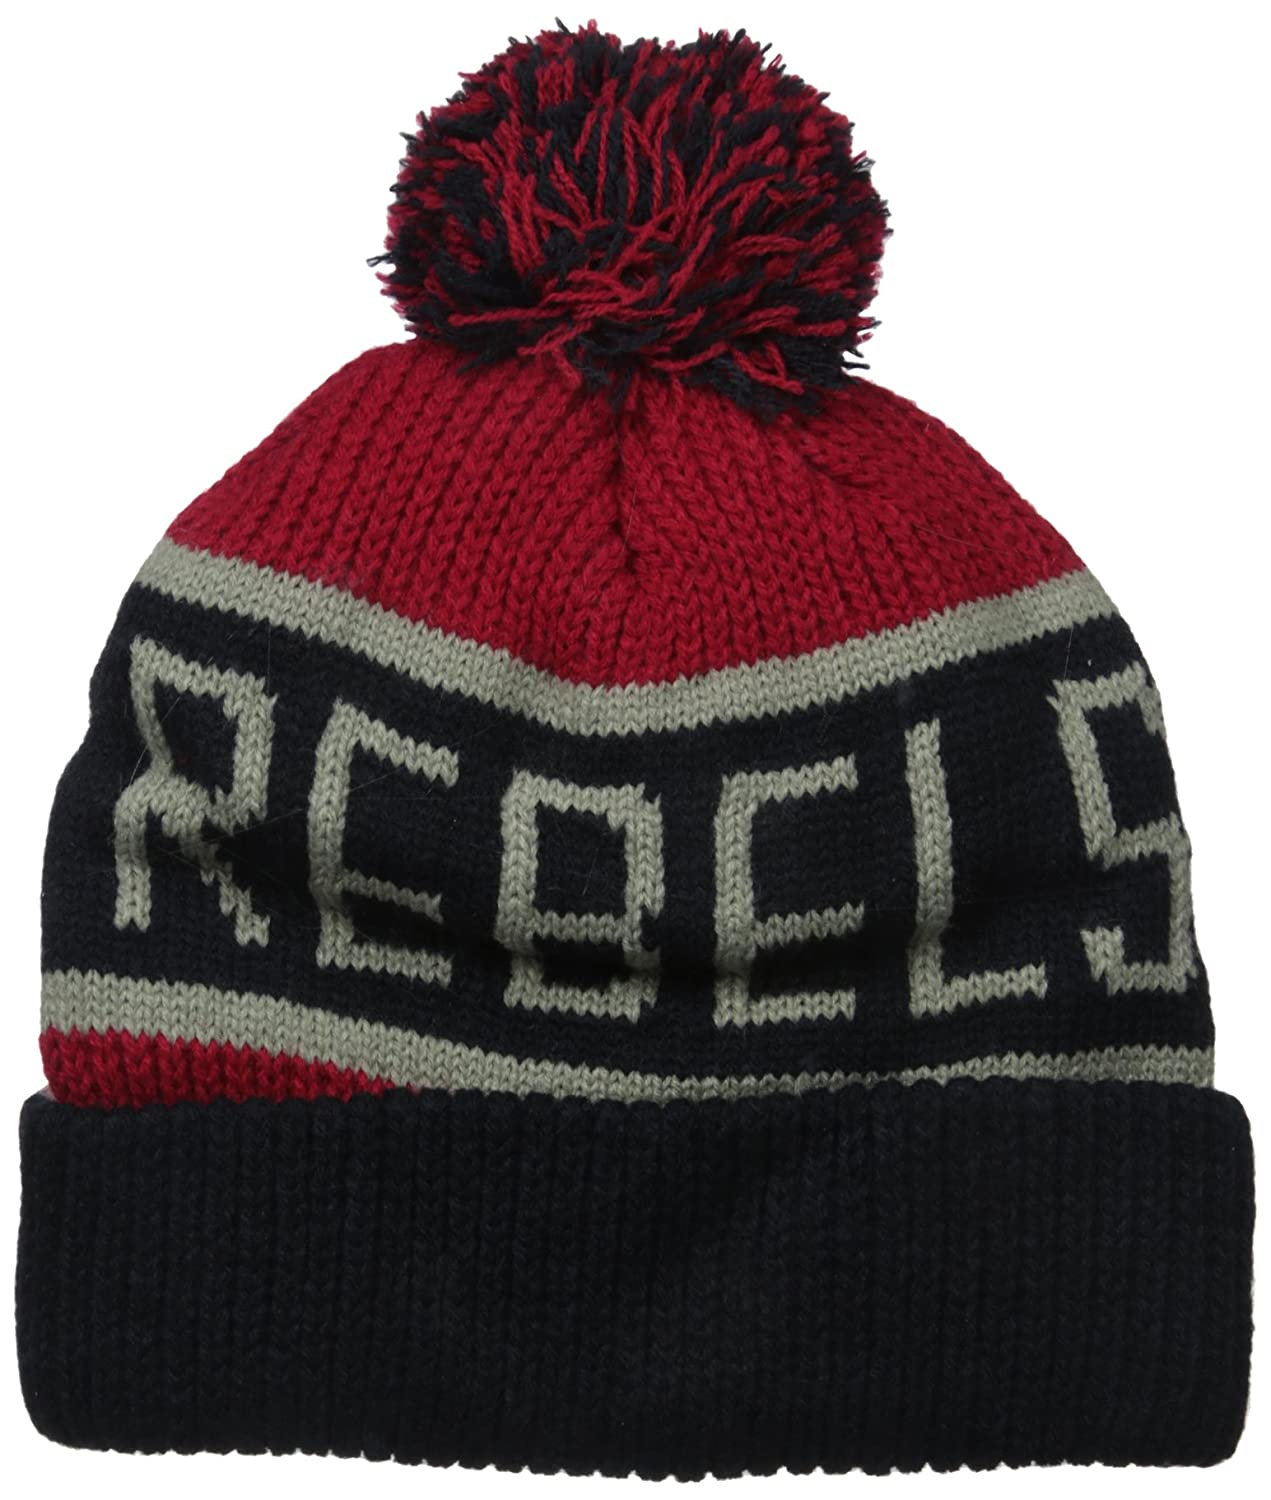 85cef17f103d77 Amazon.com : '47 NCAA Mississippi Old Miss Rebels Calgary Cuff Knit Hat,  One Size, Red : Clothing